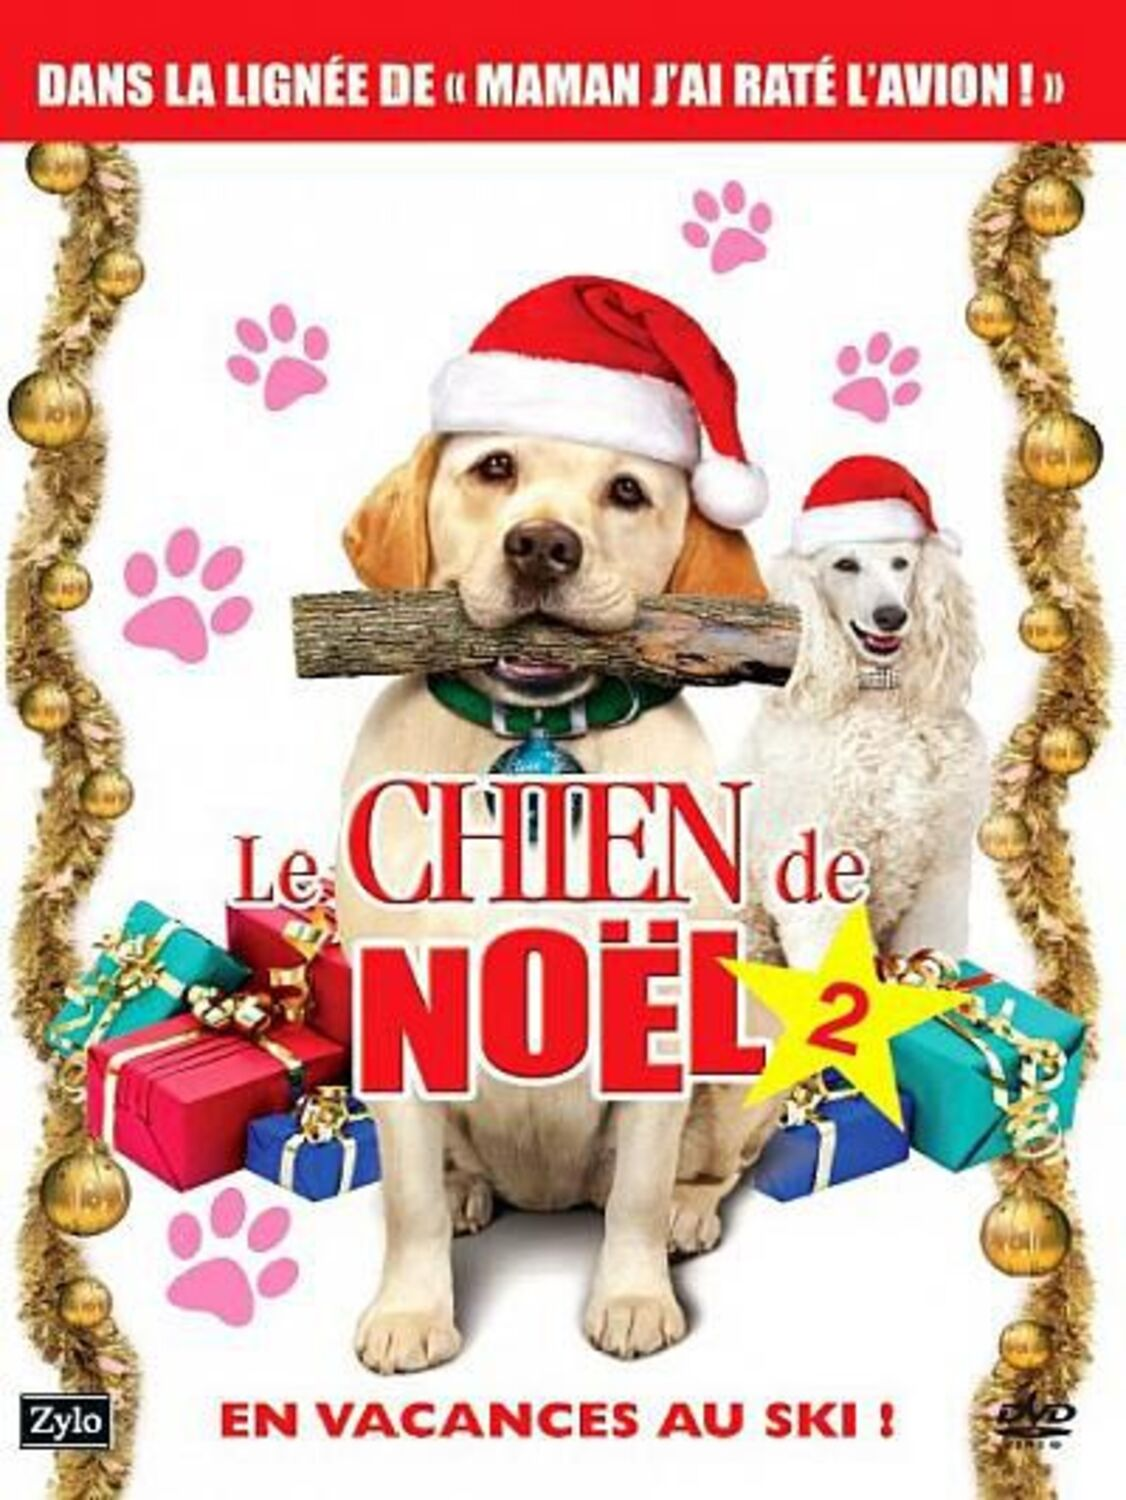 affiche poster chien noel 2 vacances ski christmas vacation dog saved disney